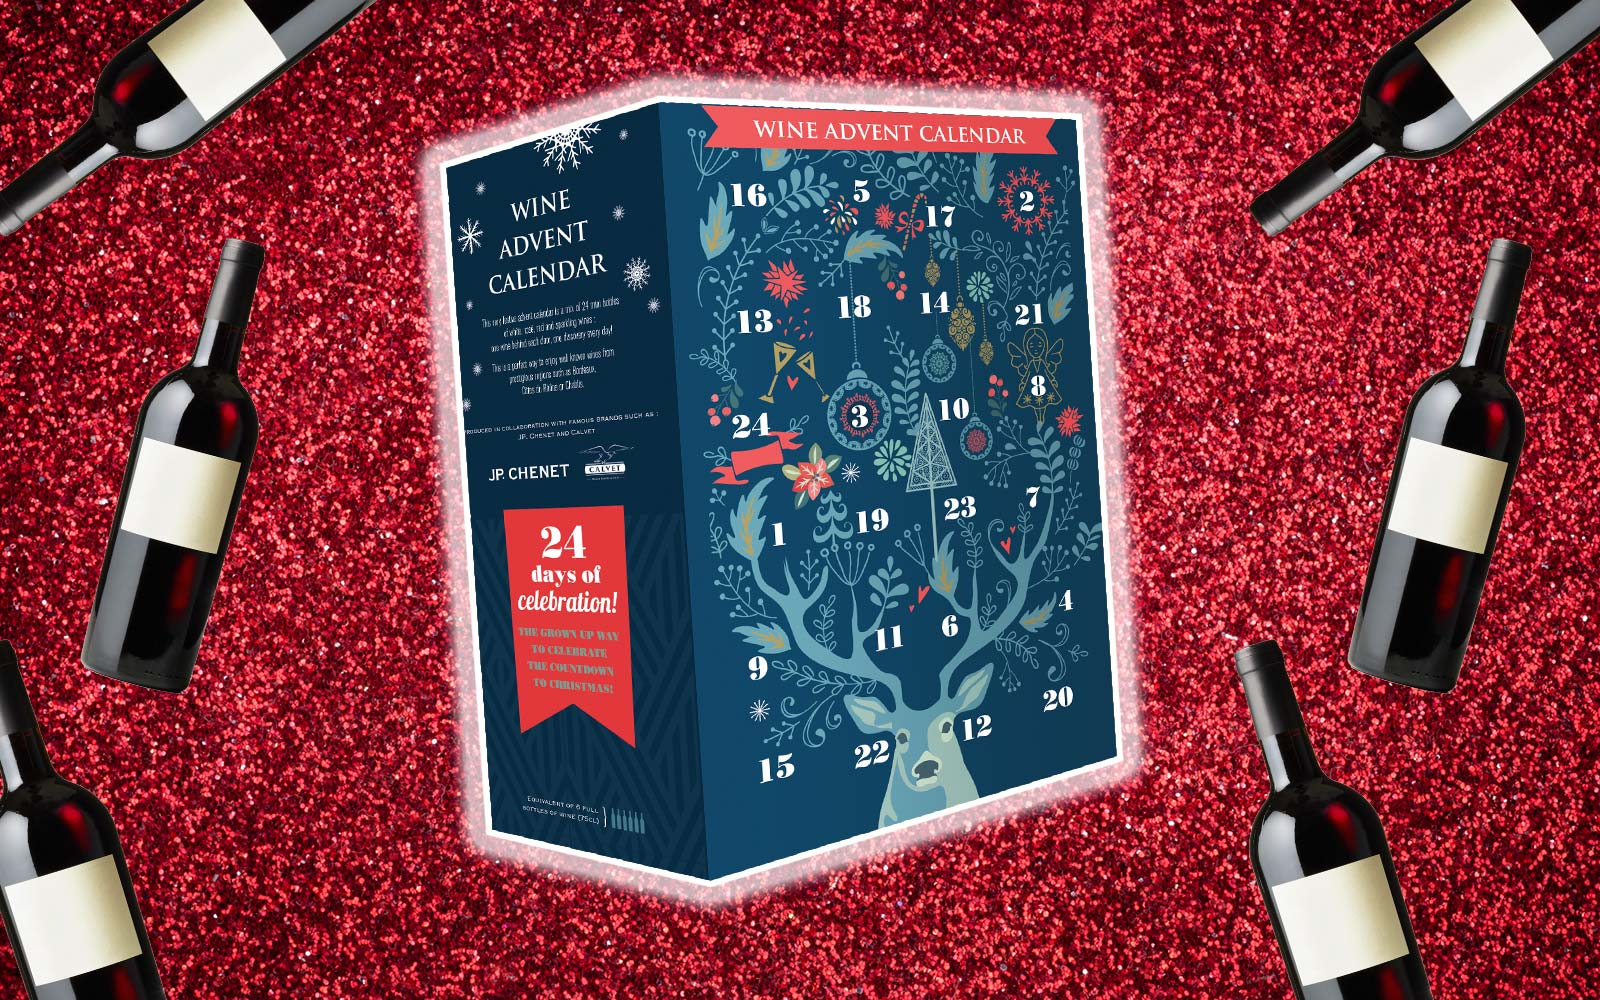 Aldi's Wine Advent Calendar Contains 24 Mini Bottles of Wine